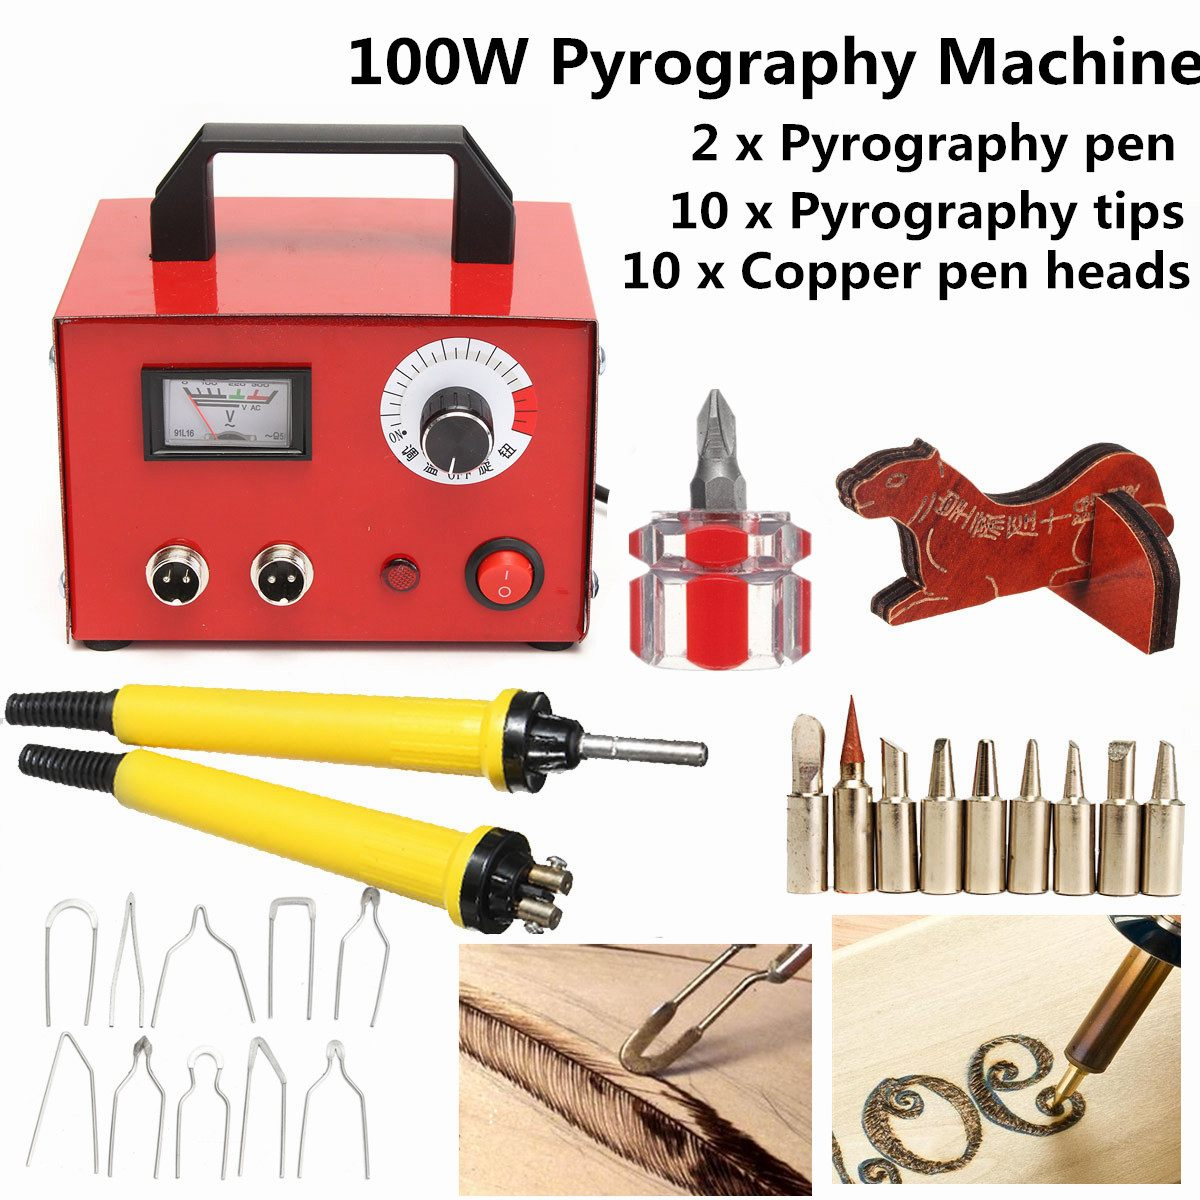 100W Digital Multifunction Pyrography Machine Gourd Wood with Pyrography Pen Wood Burning Pen Craft Tool Kit Sets AC 220V/110V|Wood Routers| |  - title=